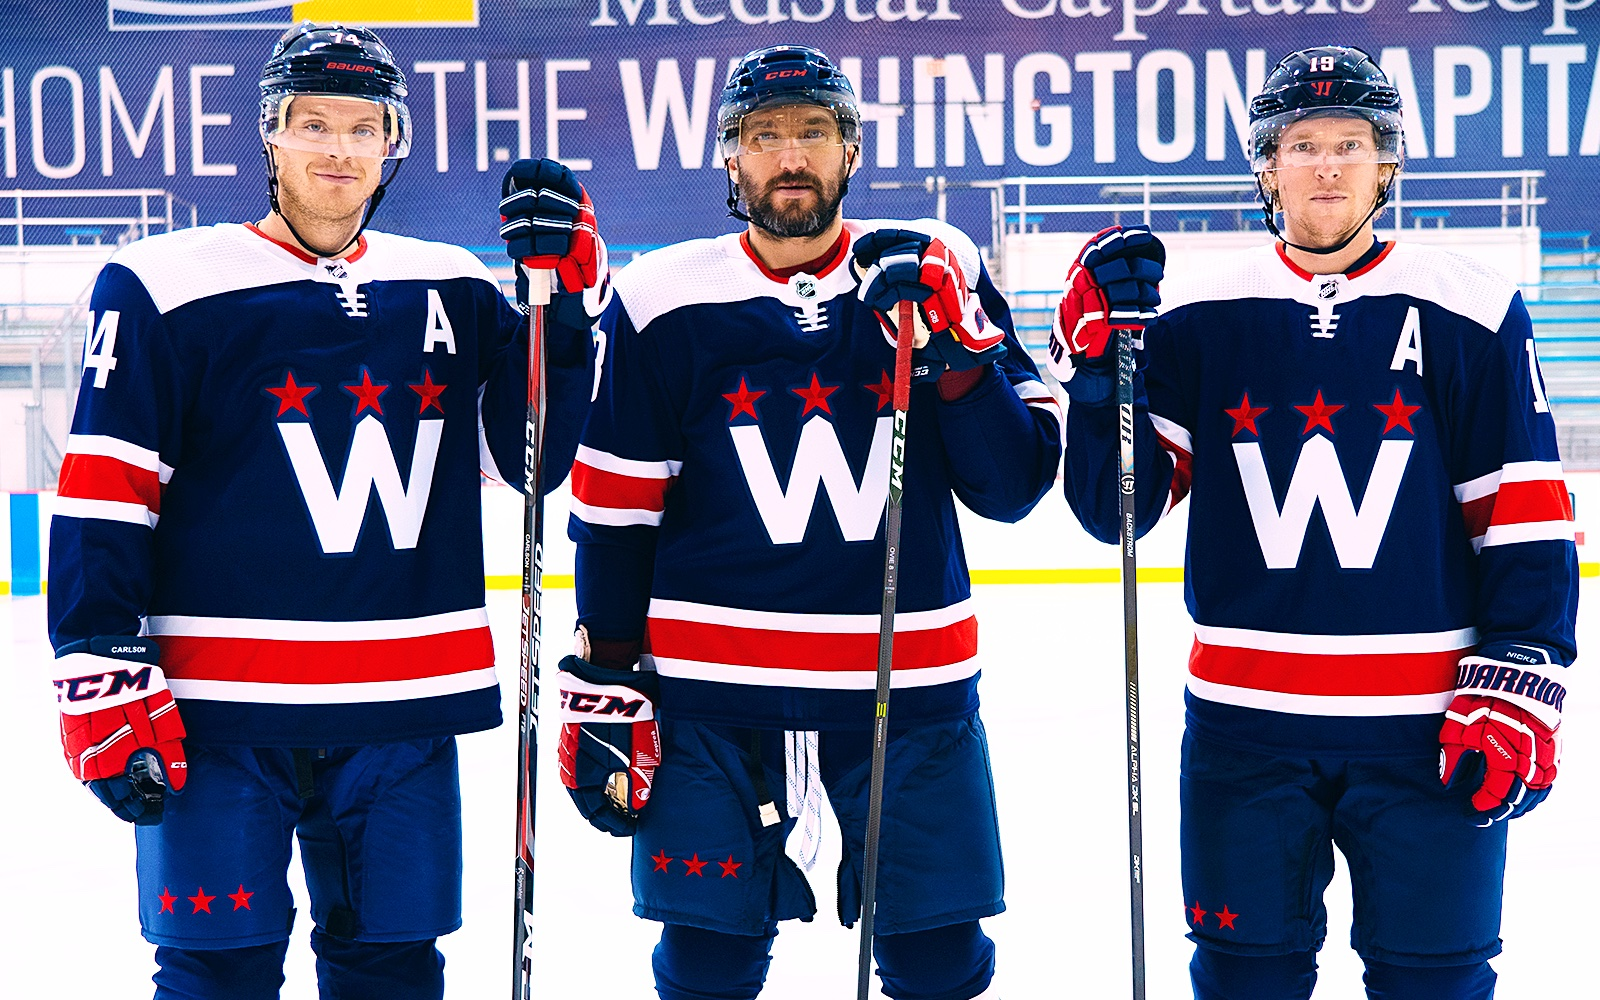 Capitals lean into navy blue with new third jersey reveal